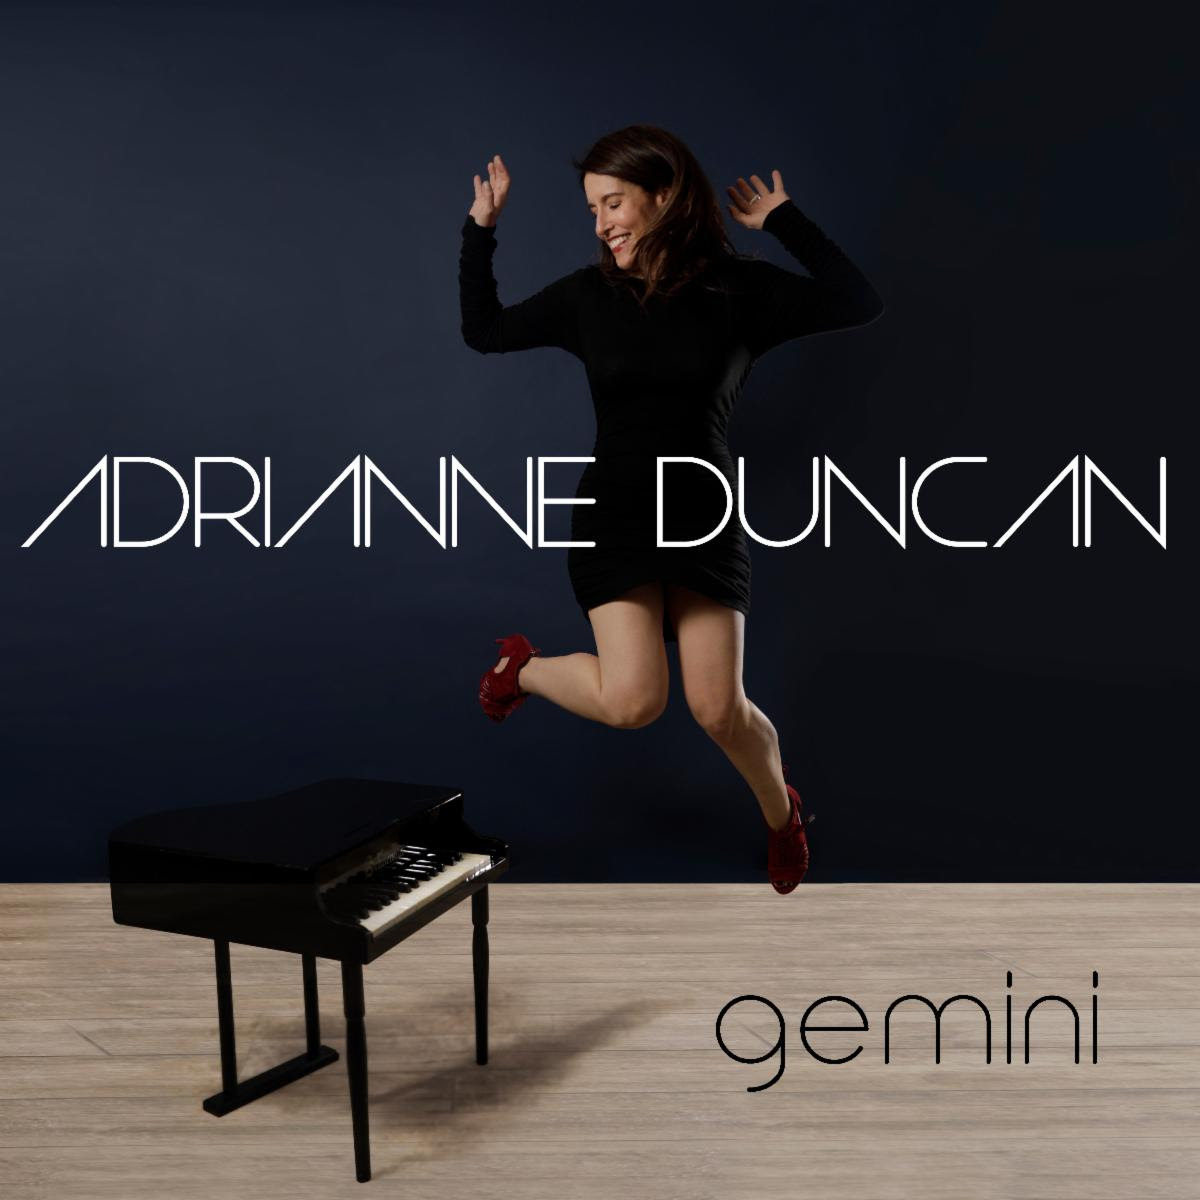 """Adrianne Duncan To Release Recording """"Gemini"""" Fall 2021"""